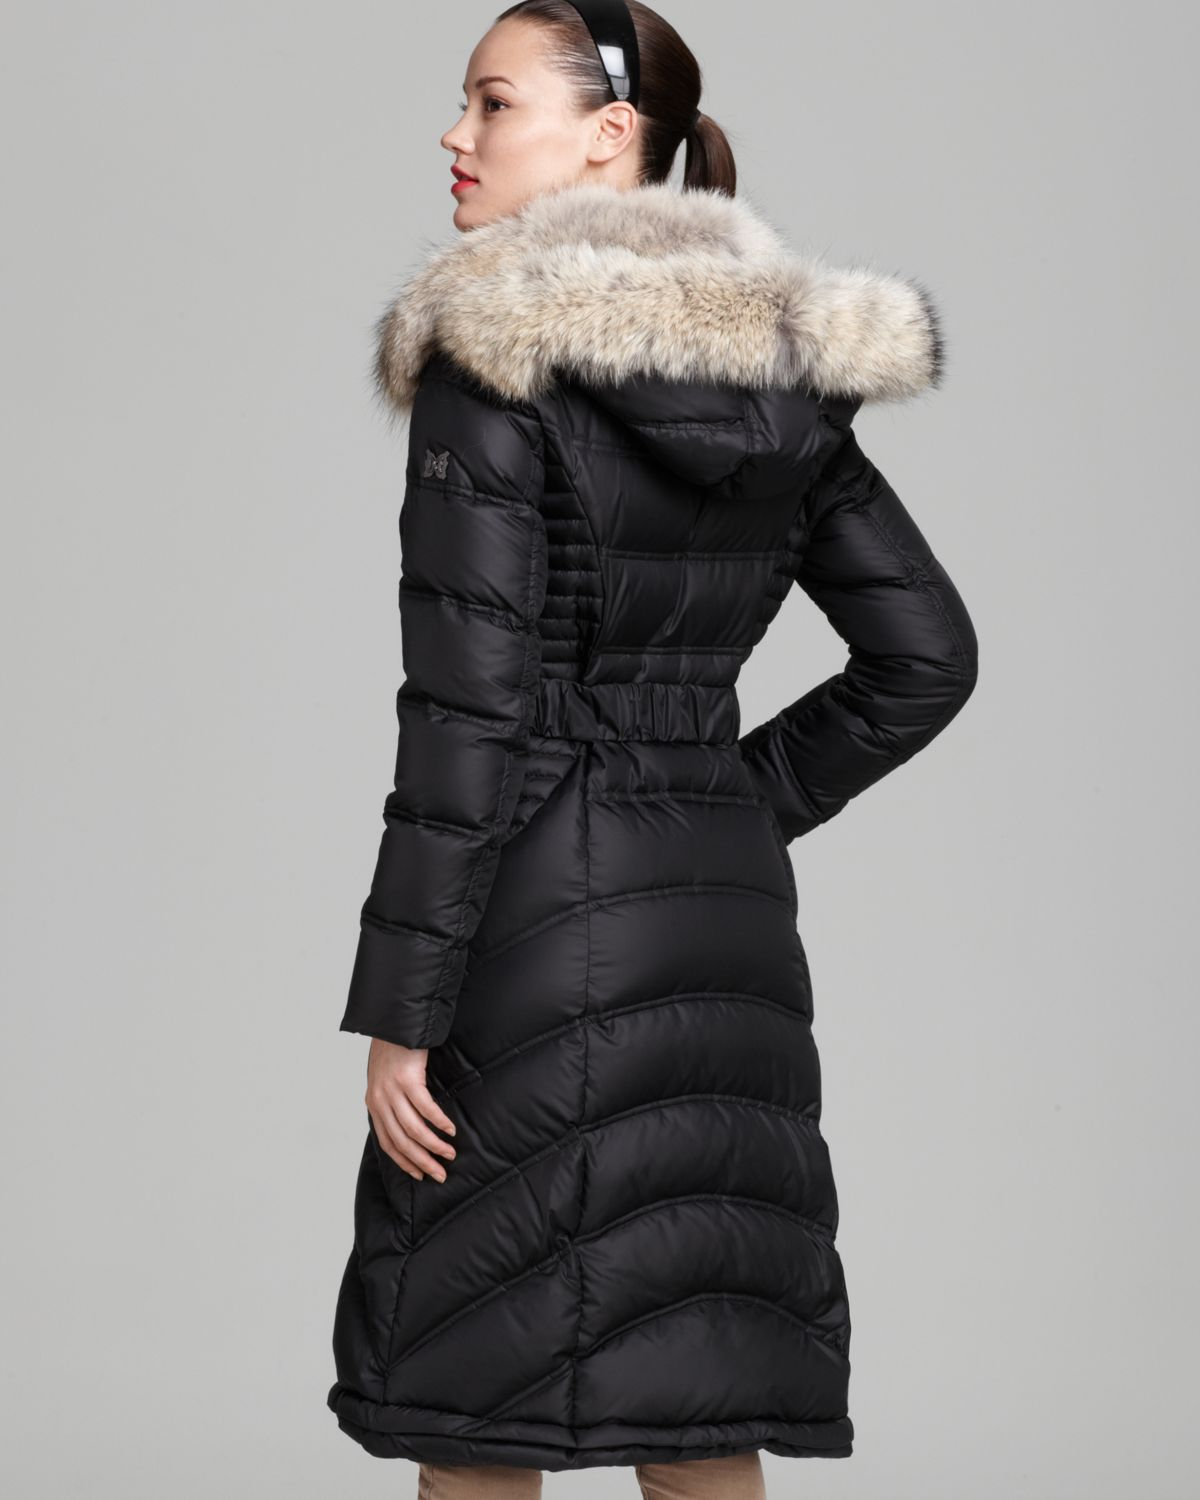 Dawn levy Down Coat Addison Belted Fur Collar in Black | Lyst